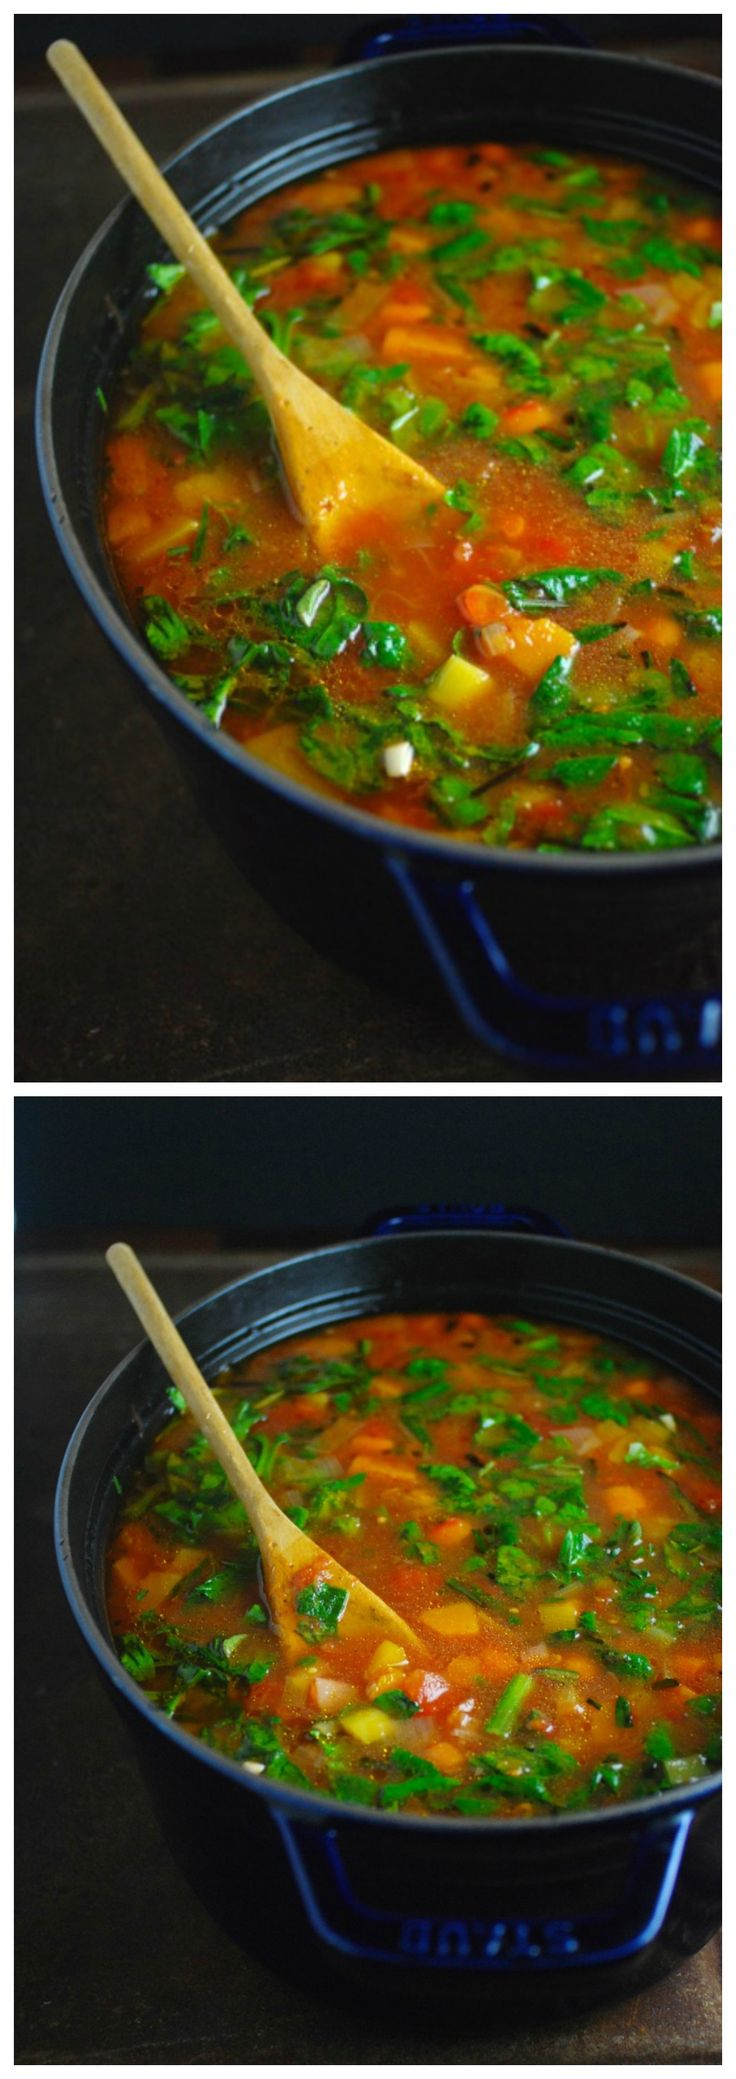 Healthy filling recipe for Winter Vegetable Soup that is chock-full of butternut squash, carrots and spinach. Make a big pot on Sunday and eat it all week for lunch. Vegan, gluten free, paleo, whole30 approved.